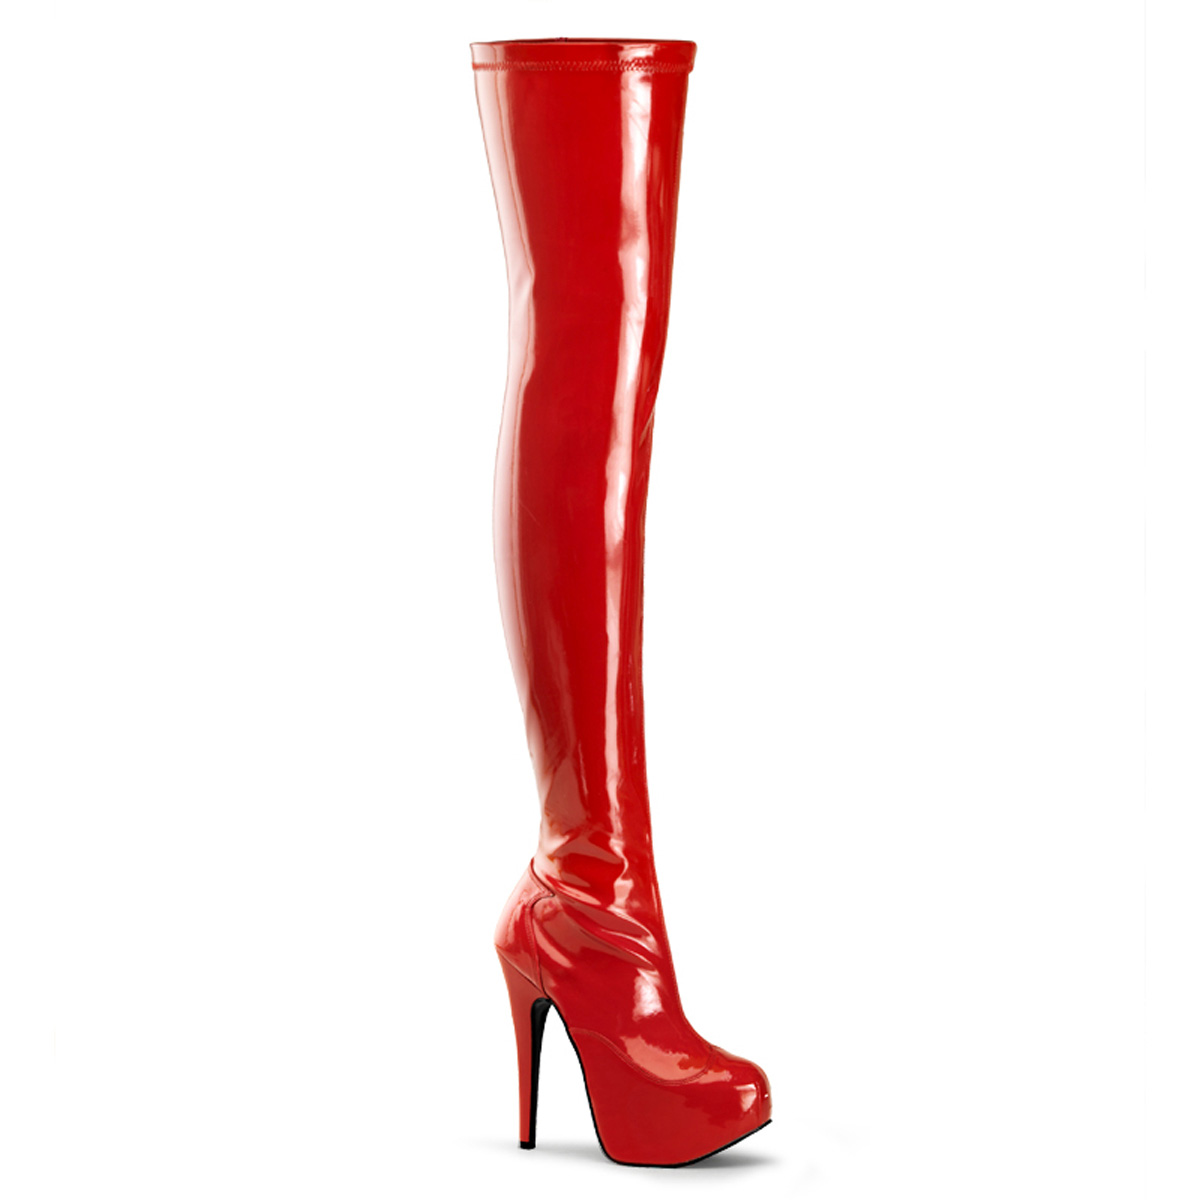 "BORDELLO TEEZE-3000 5 3/4"" Heel, 1 3/4"" Hidden PF Stretch Thigh Boot, Side Zip/Red Str Pat"